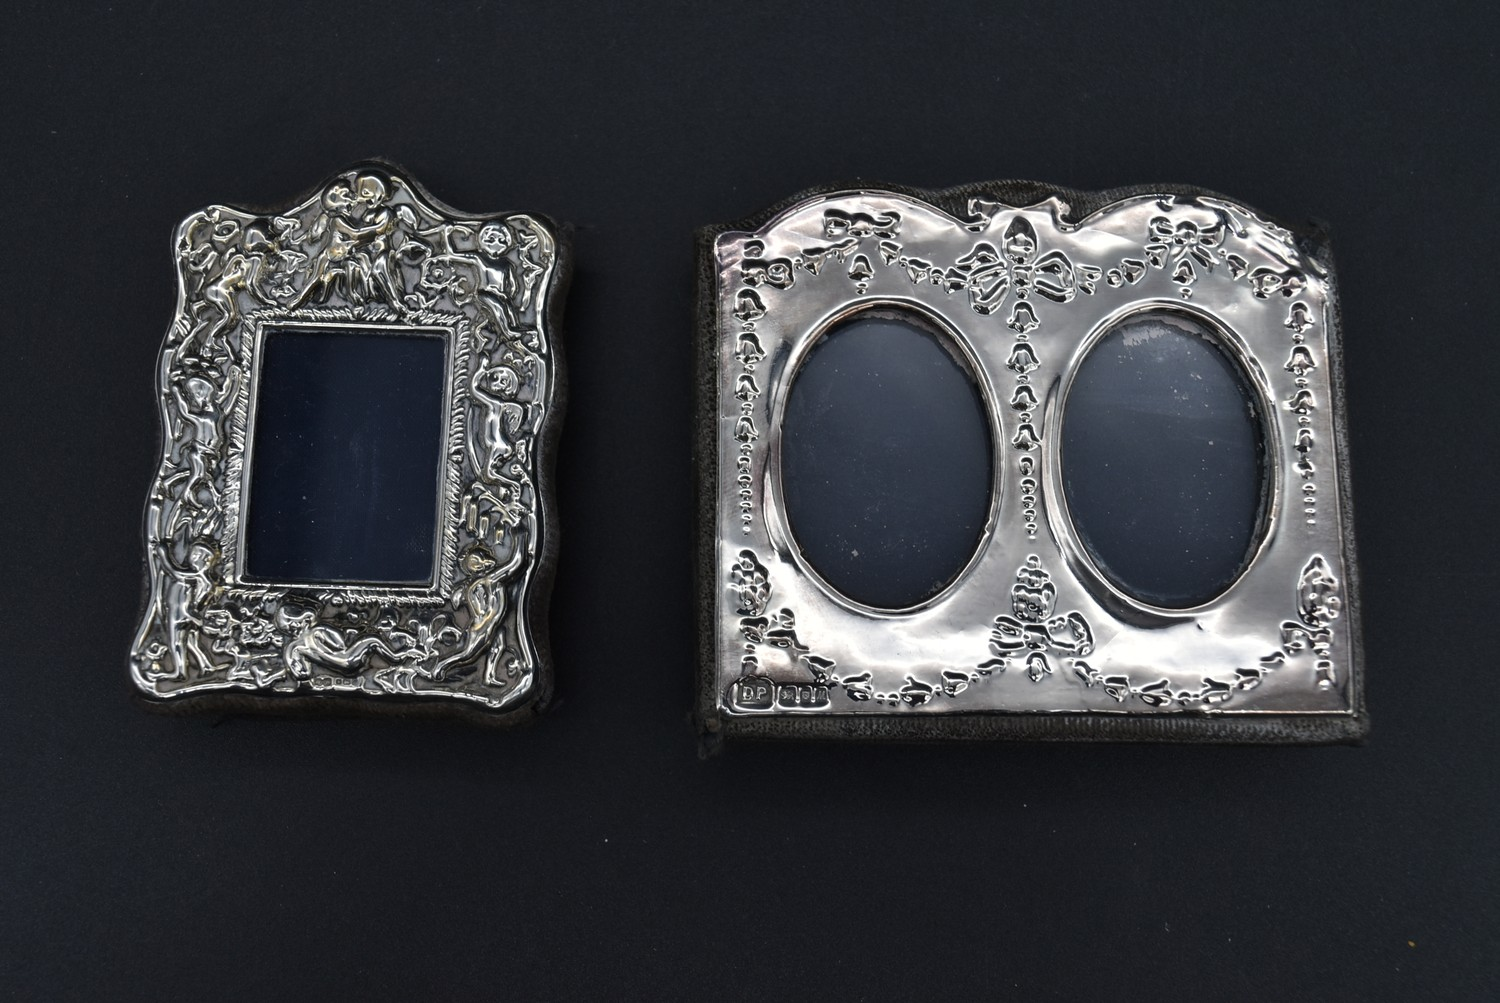 A miscellaneous collection of silver framed easel mirrors, various English hallmarks. H.20cm W. - Image 2 of 13